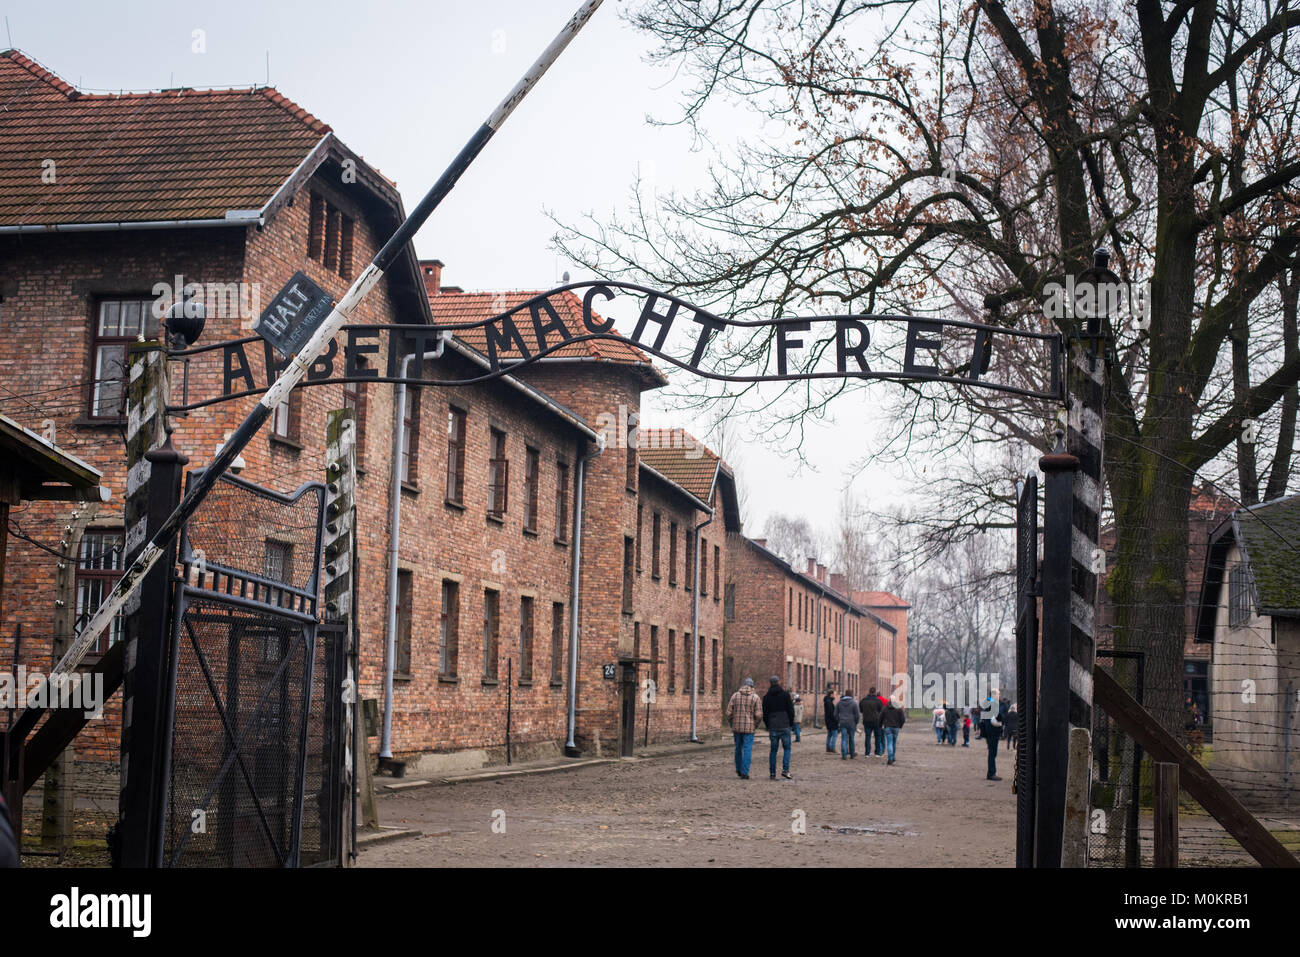 Arbeit Macht Frei sign at entrance to Auschwitz Concentration Camp, near Krakow, Poland - Stock Image